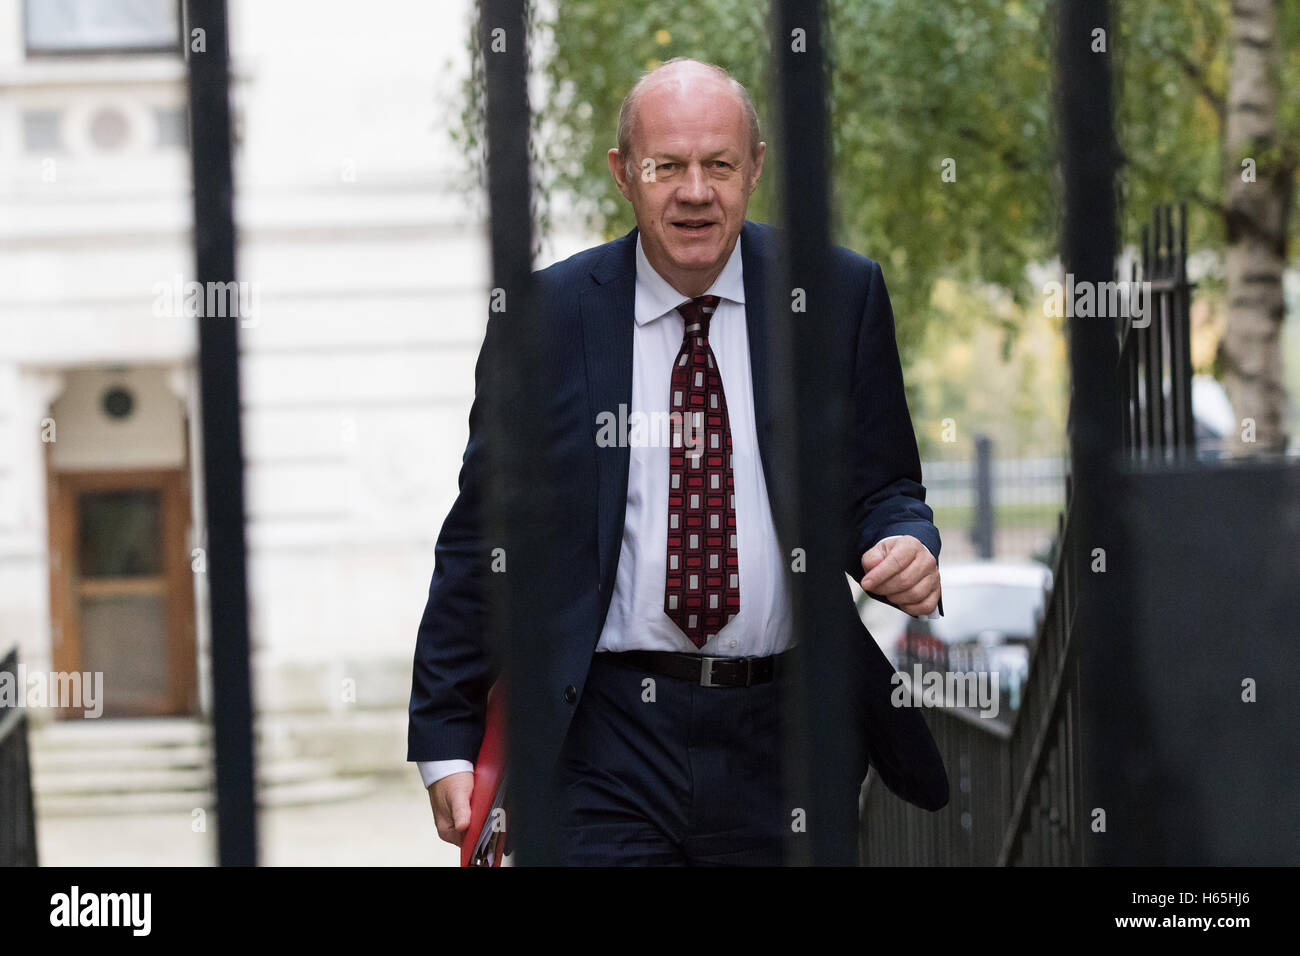 London, UK. 25th October 2016. Damian Green arrives in Downing Street for a cabinet meeting this morning. Credit: - Stock Image